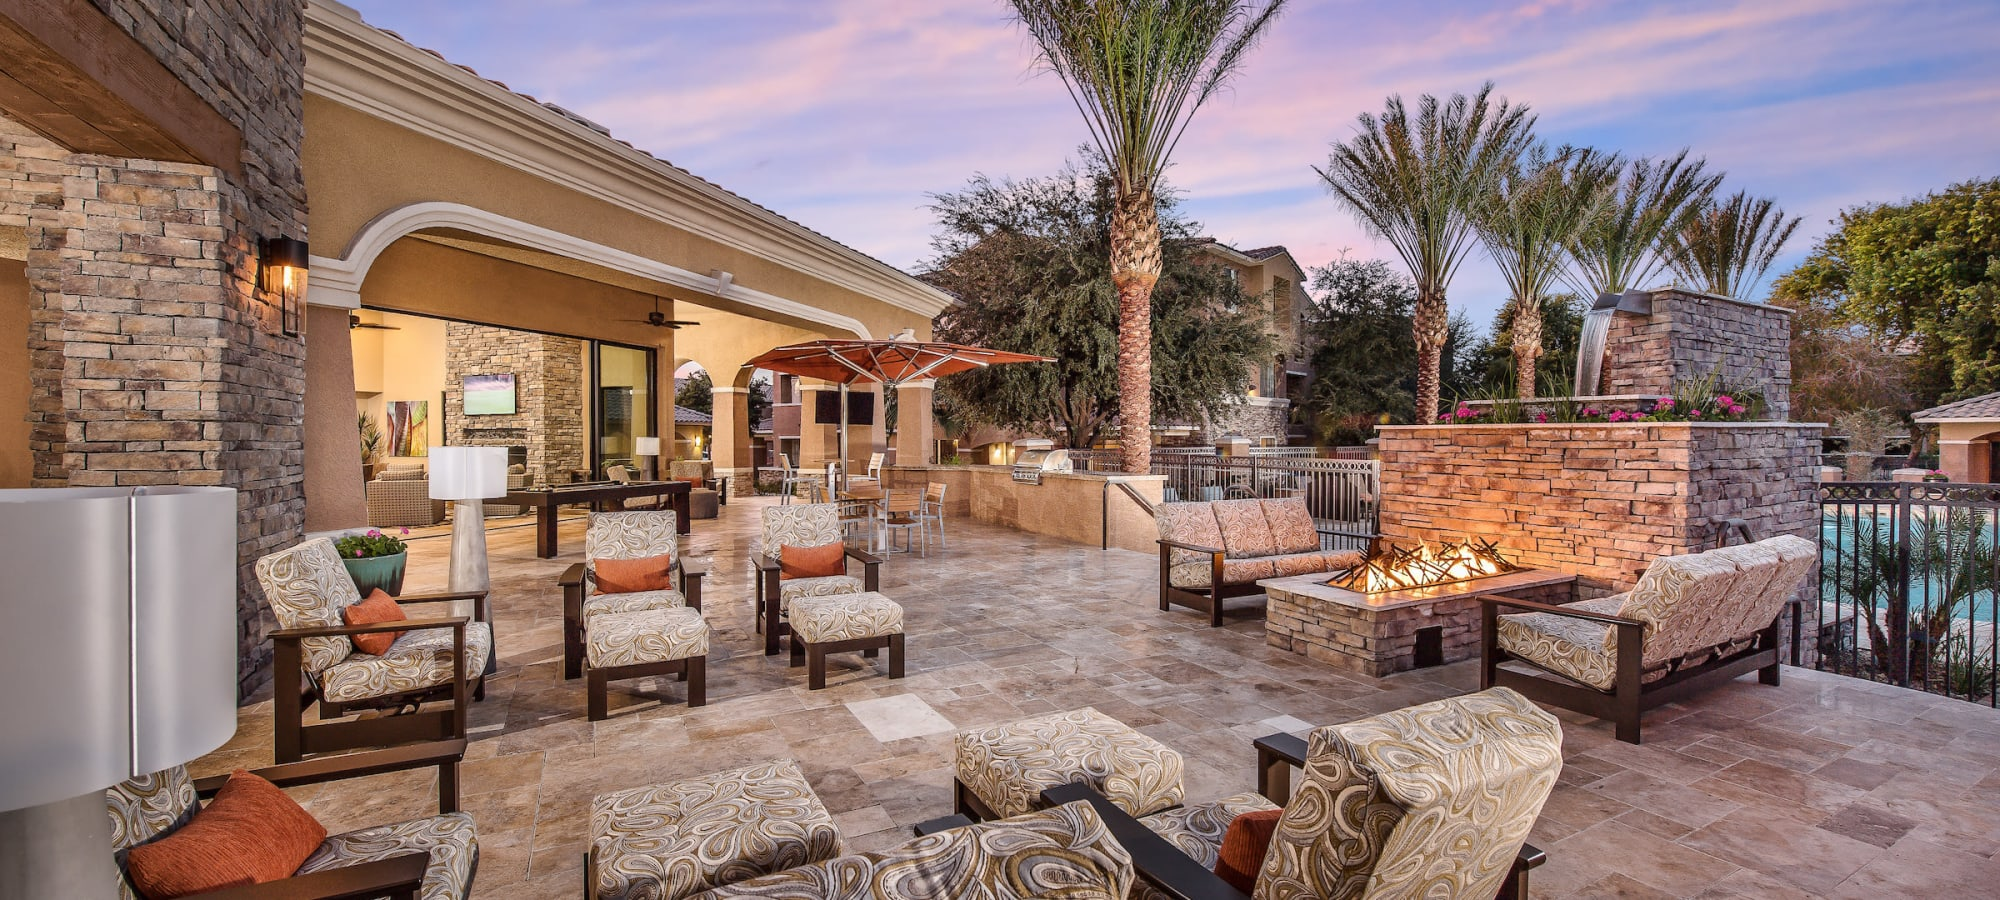 Lounge seating at the outdoor fireplace at Stone Oaks in Chandler, Arizona